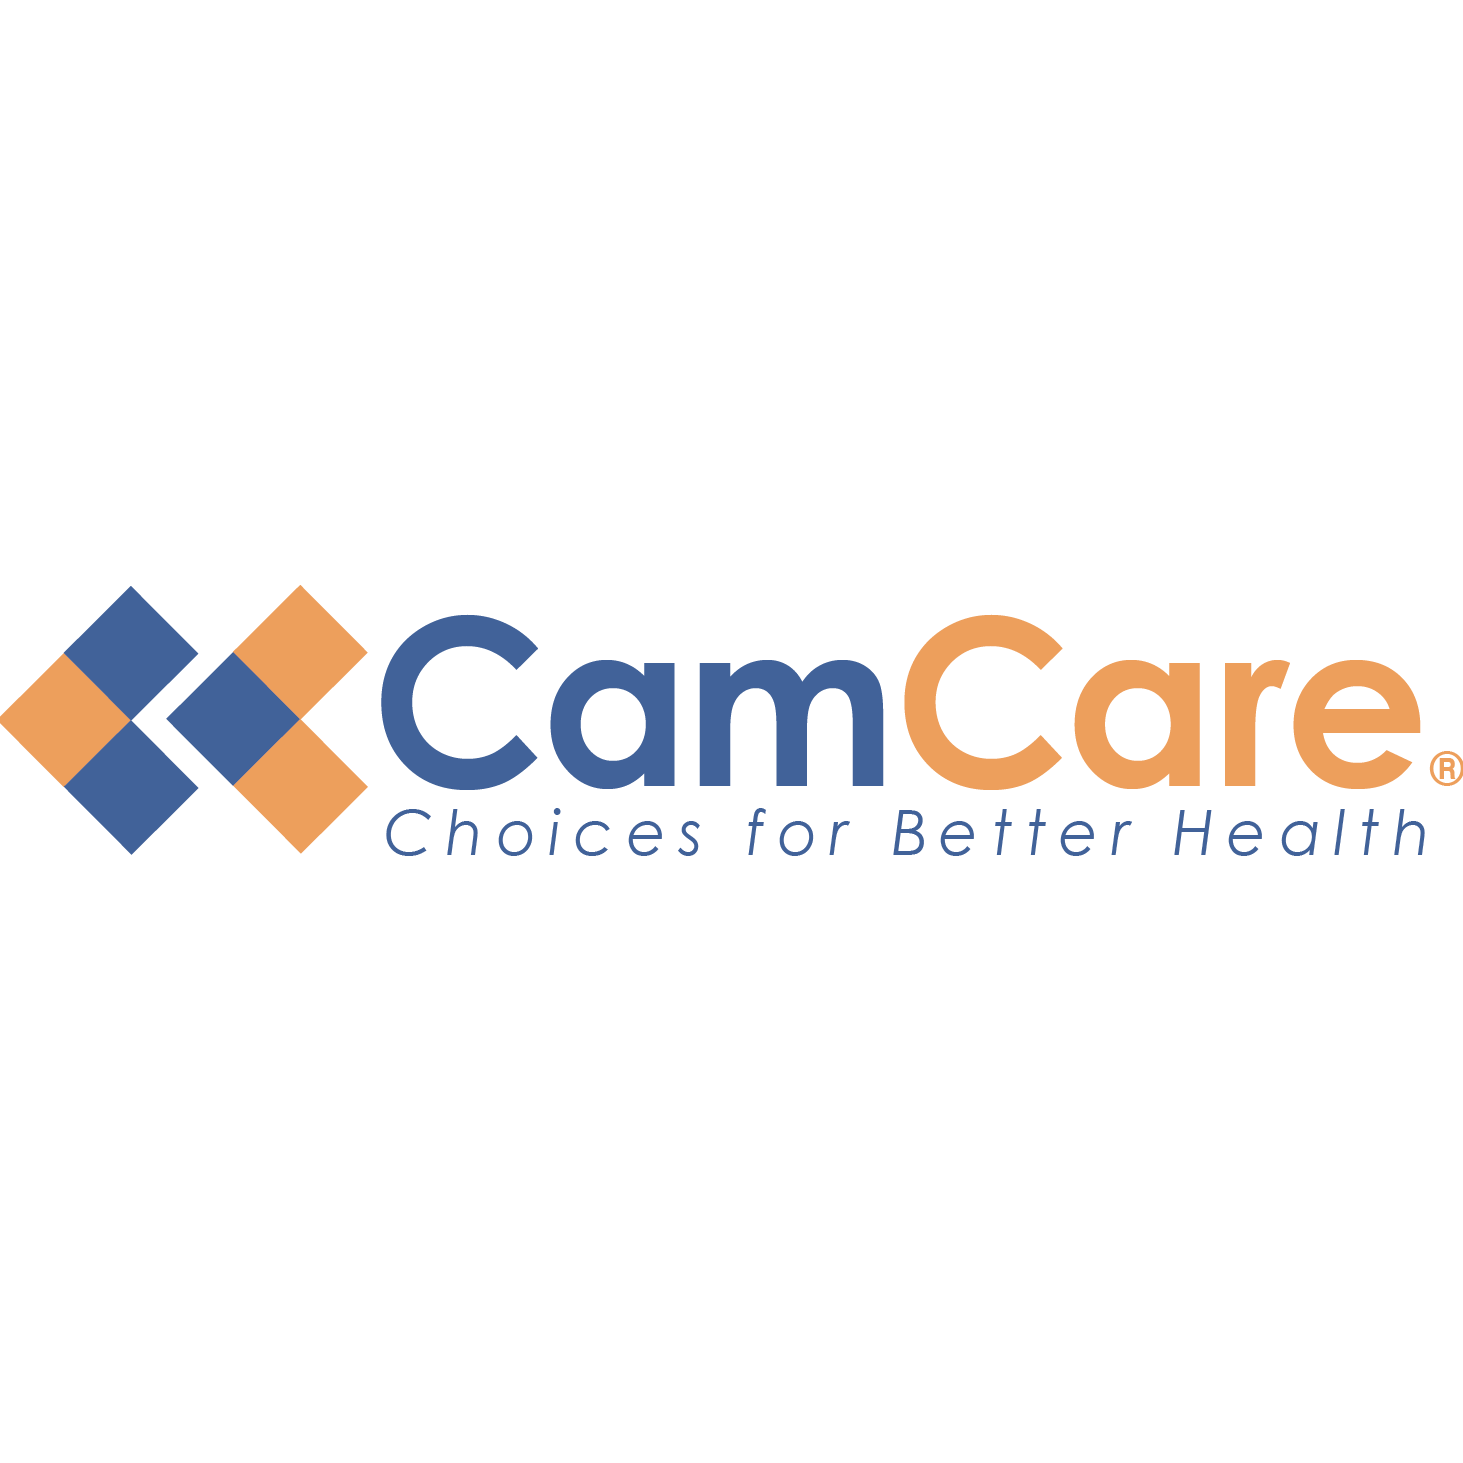 CamCare.org